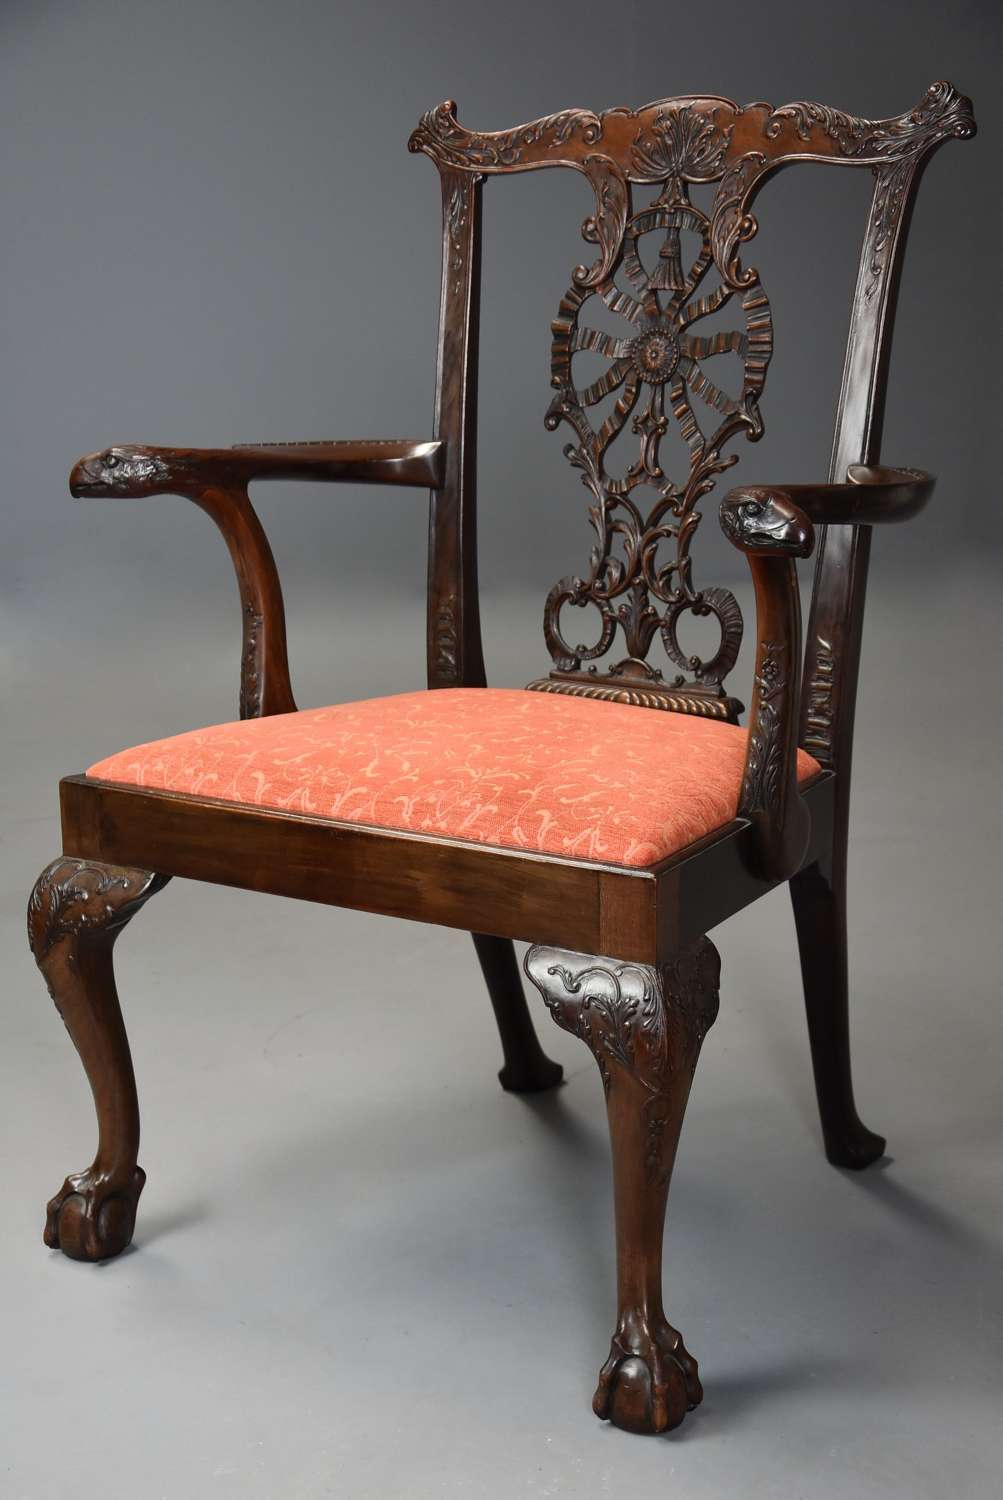 Superb quality early 20thc Chippendale style mahogany open armchair